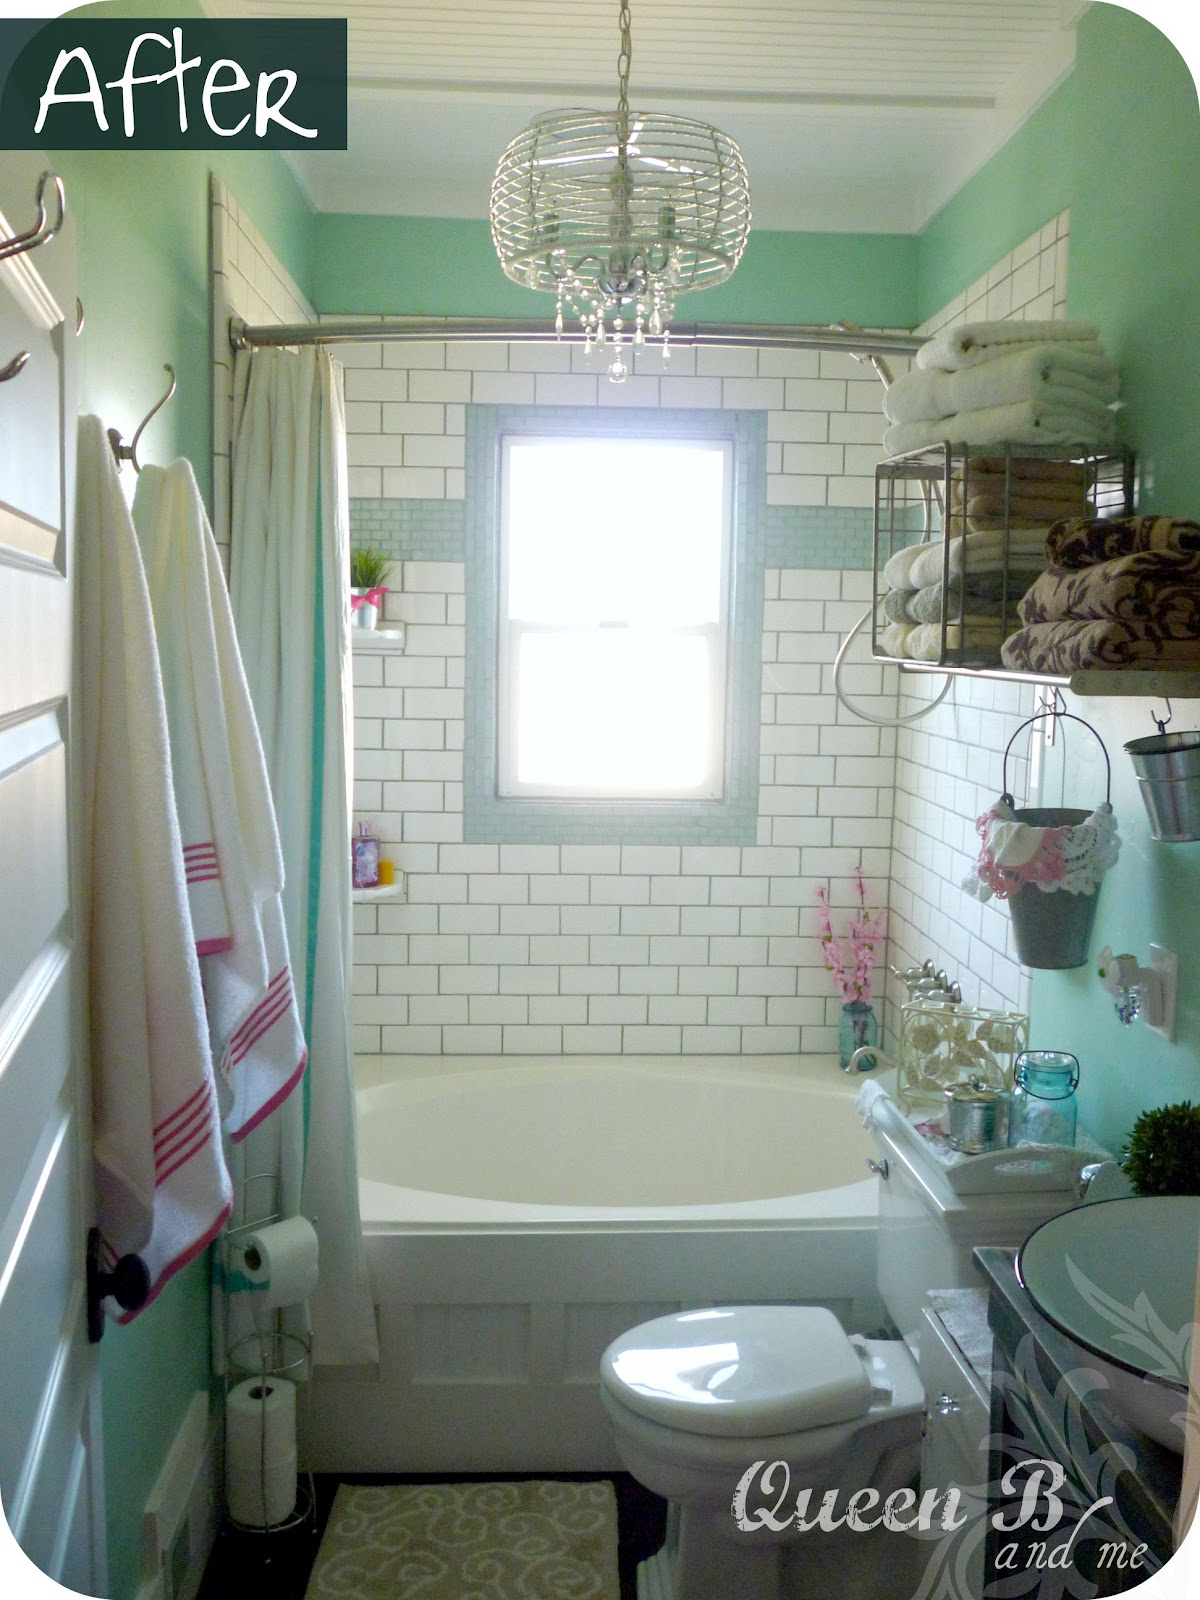 Subway tile tutorial subway tile tutorial part 2 how to transform your bathroom into something beautiful dailygadgetfo Gallery